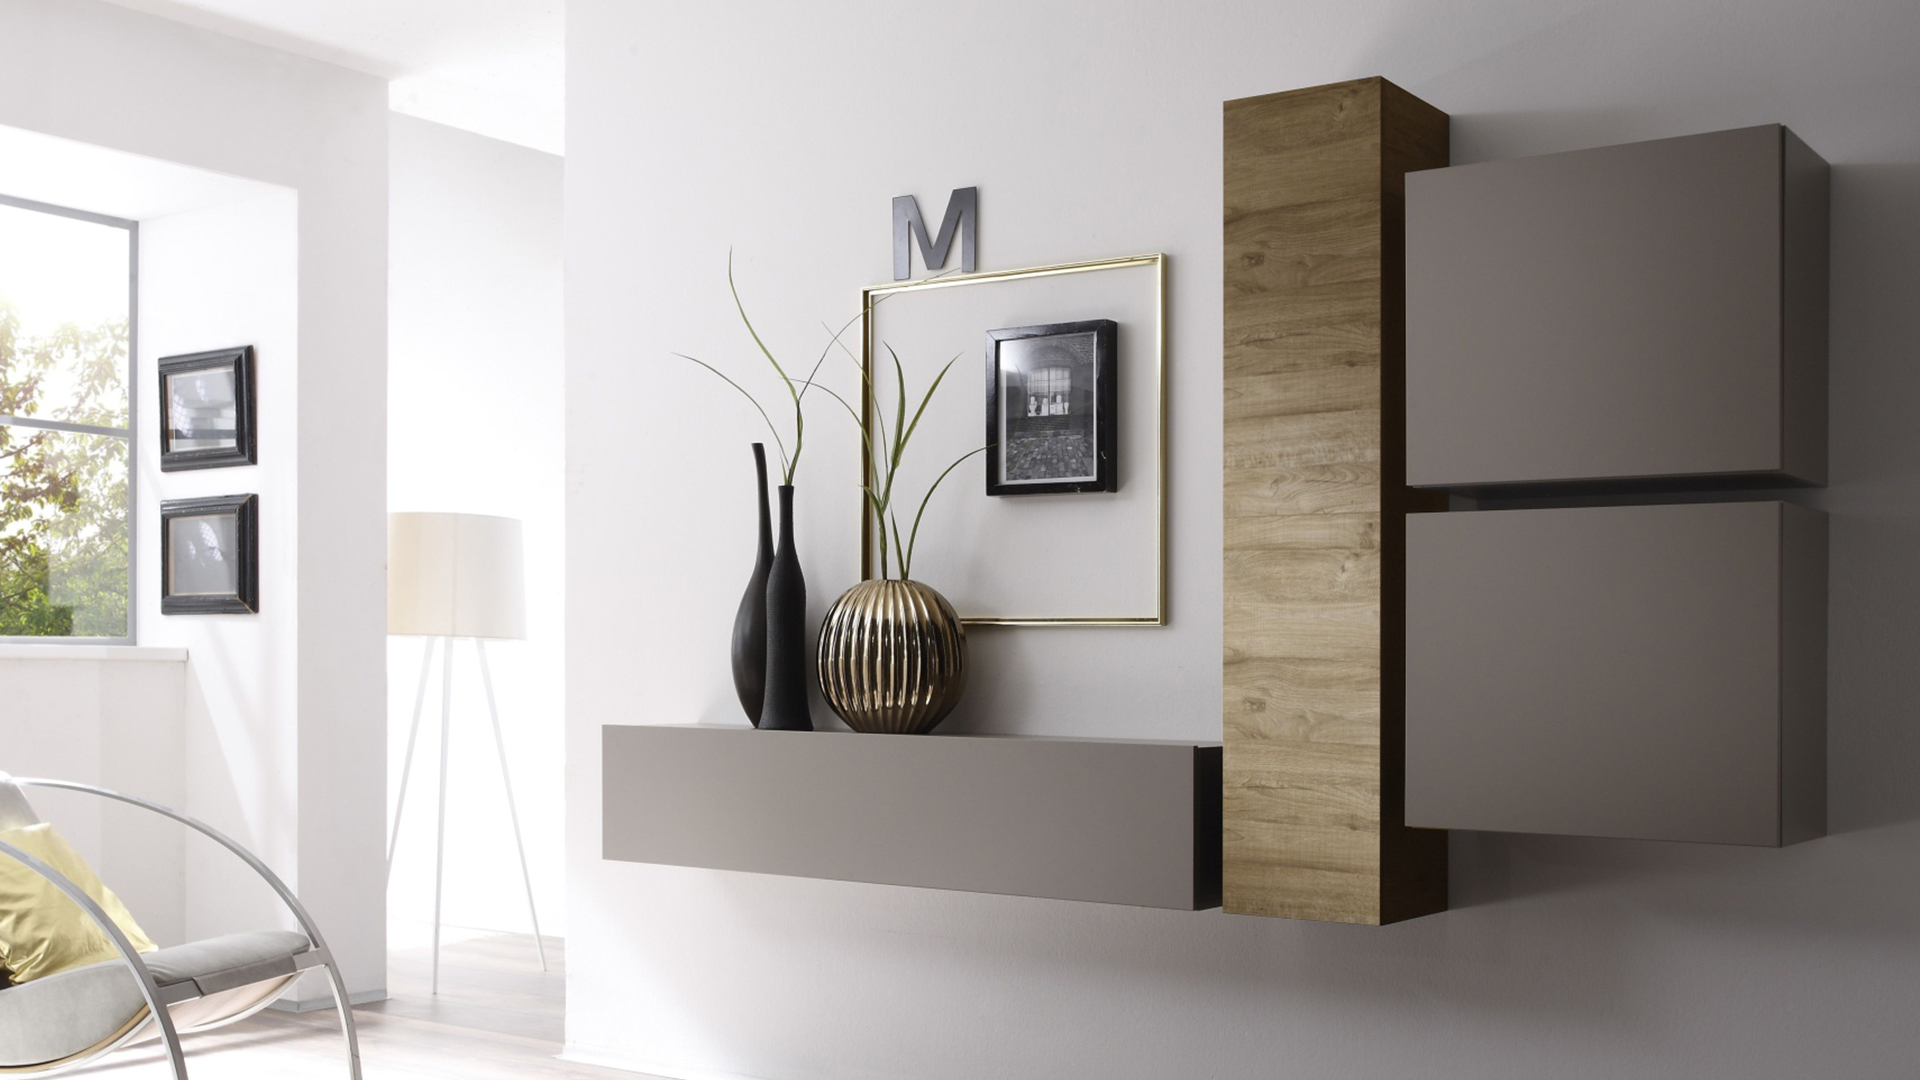 Ensemble Meuble Tv Bois Maison Design Wiblia Com # Meuble Tv Luminescence